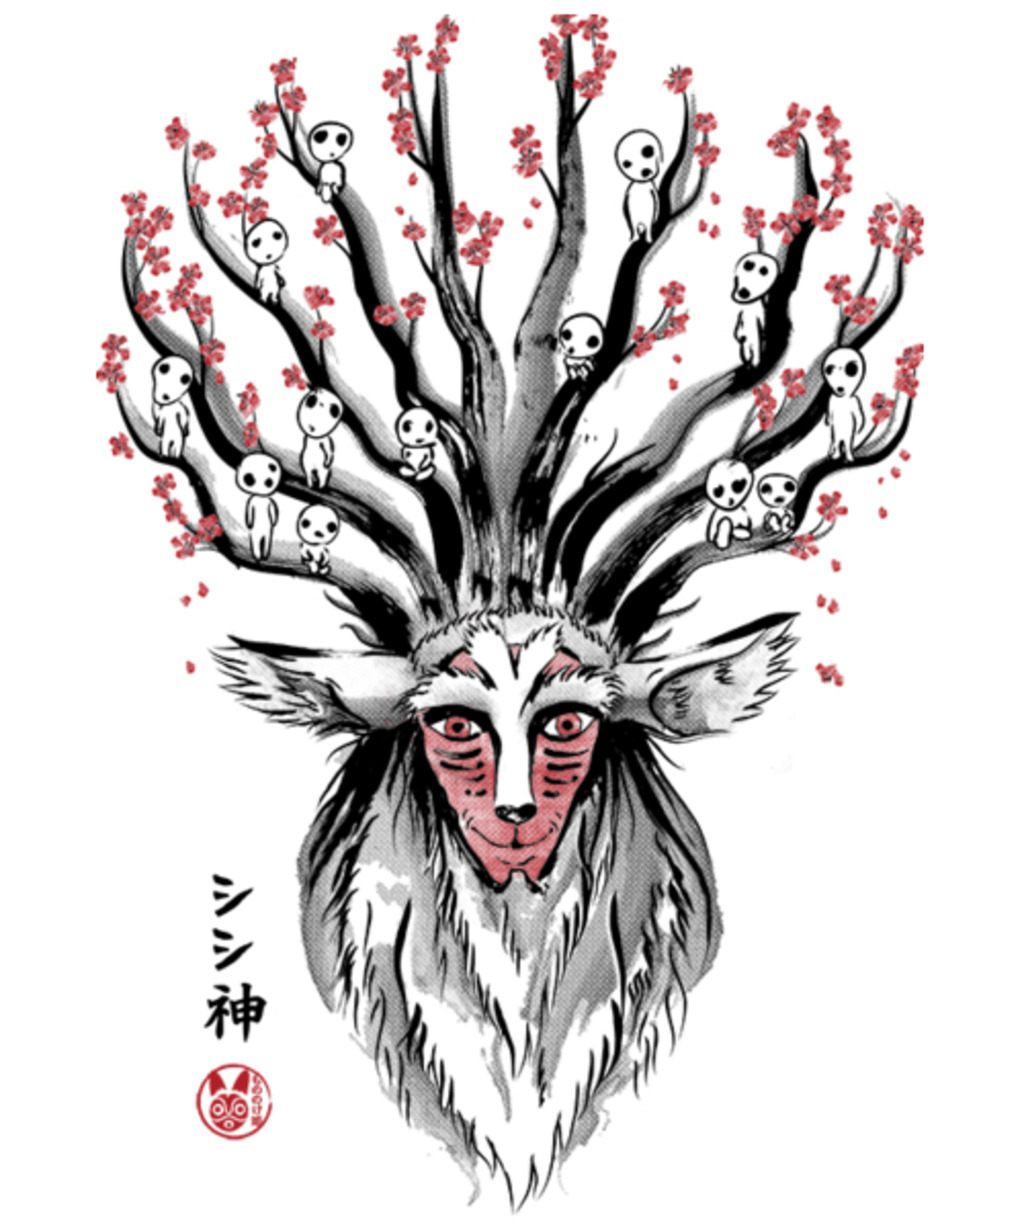 Qwertee: The Deer God sumi-e